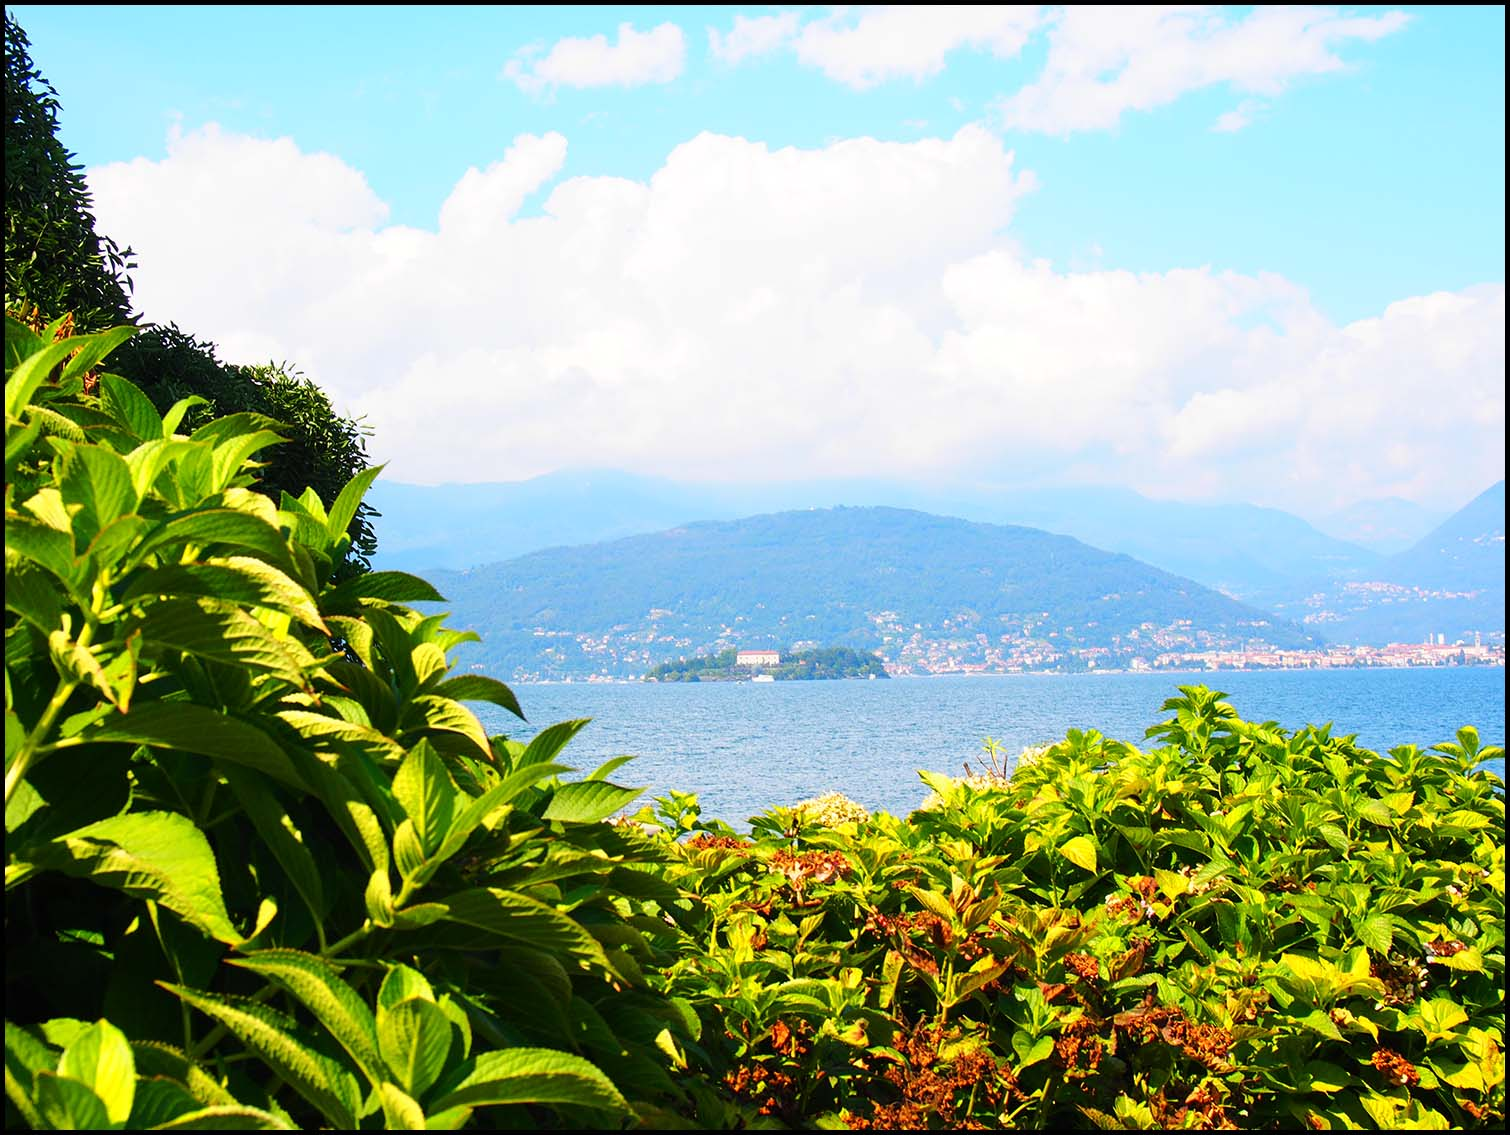 View to Isola Bella, Stresa, Italy